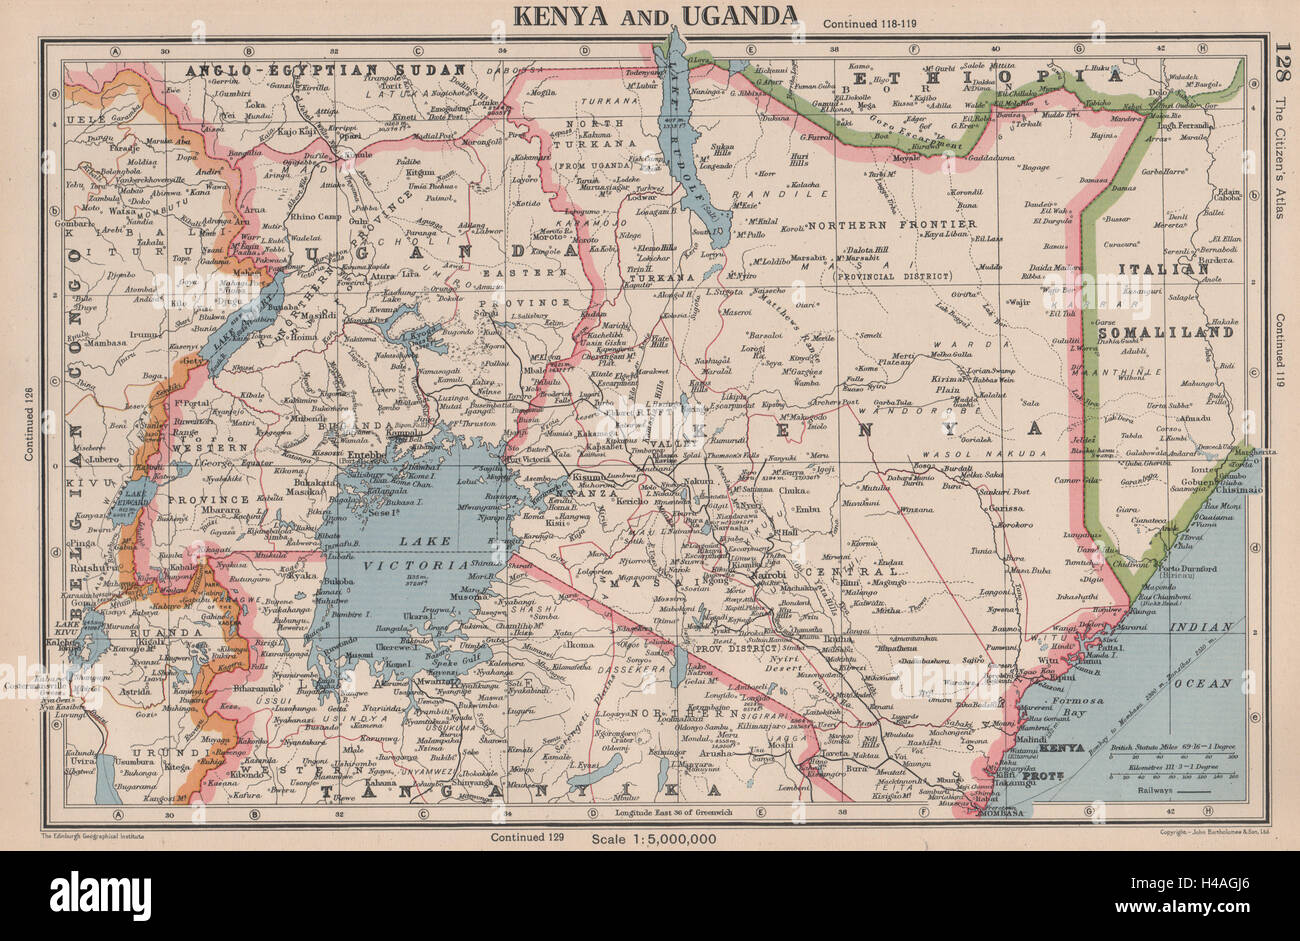 EAST AFRICA Kenya and Uganda Lake Victoria BARTHOLOMEW 1944 old